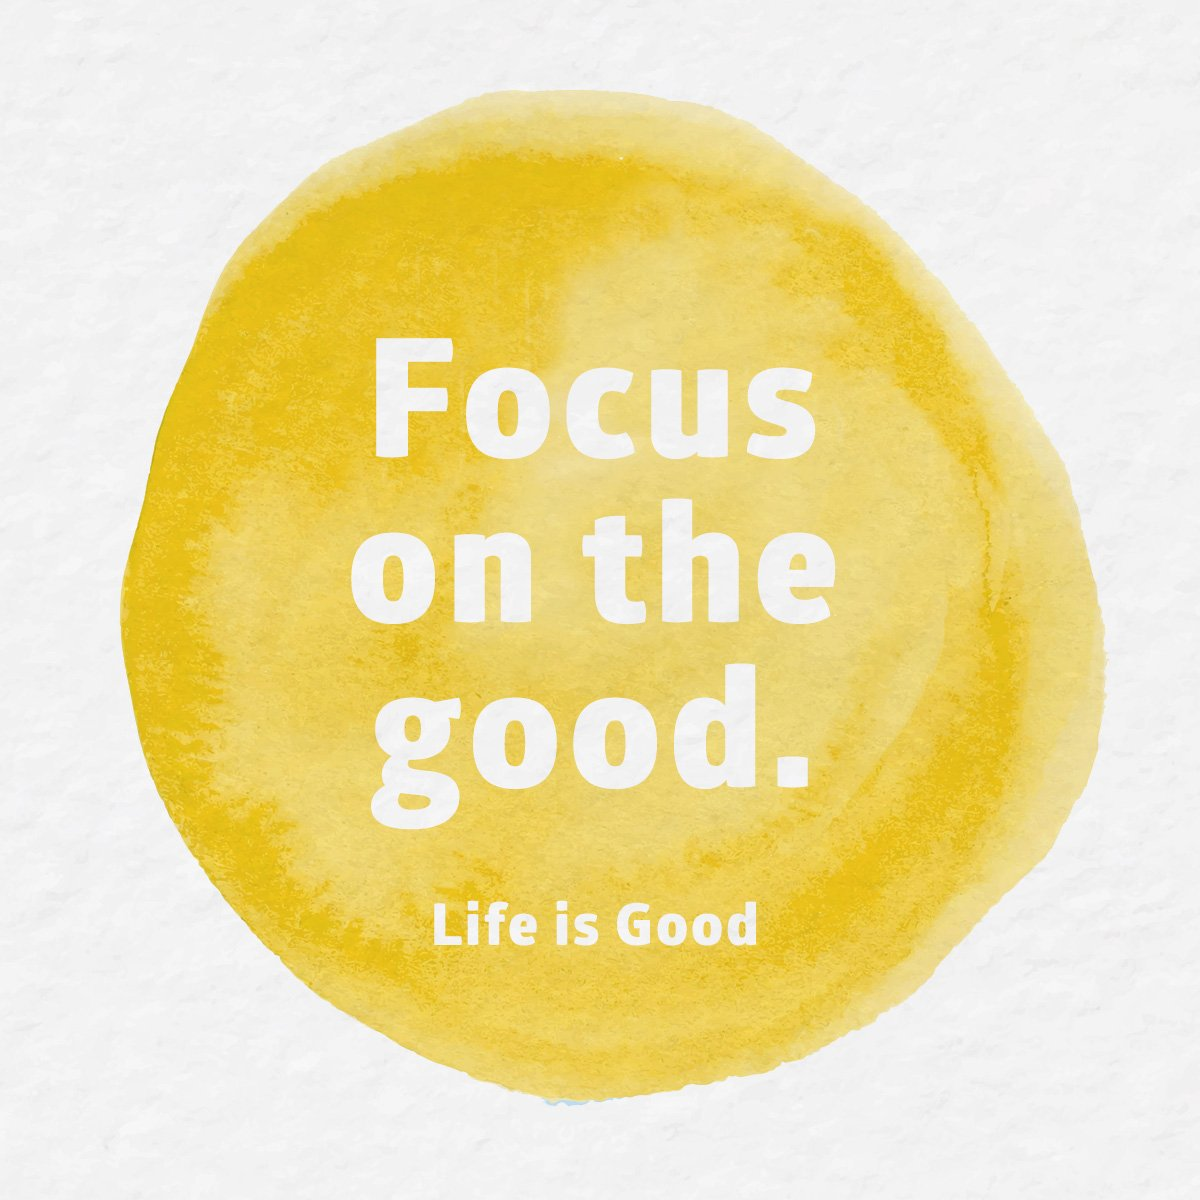 Today is #PositiveThinkingDay. We focus on the good, because what we focus on grows. What's good today? #GROWtheGood https://t.co/LobGzzsfQM